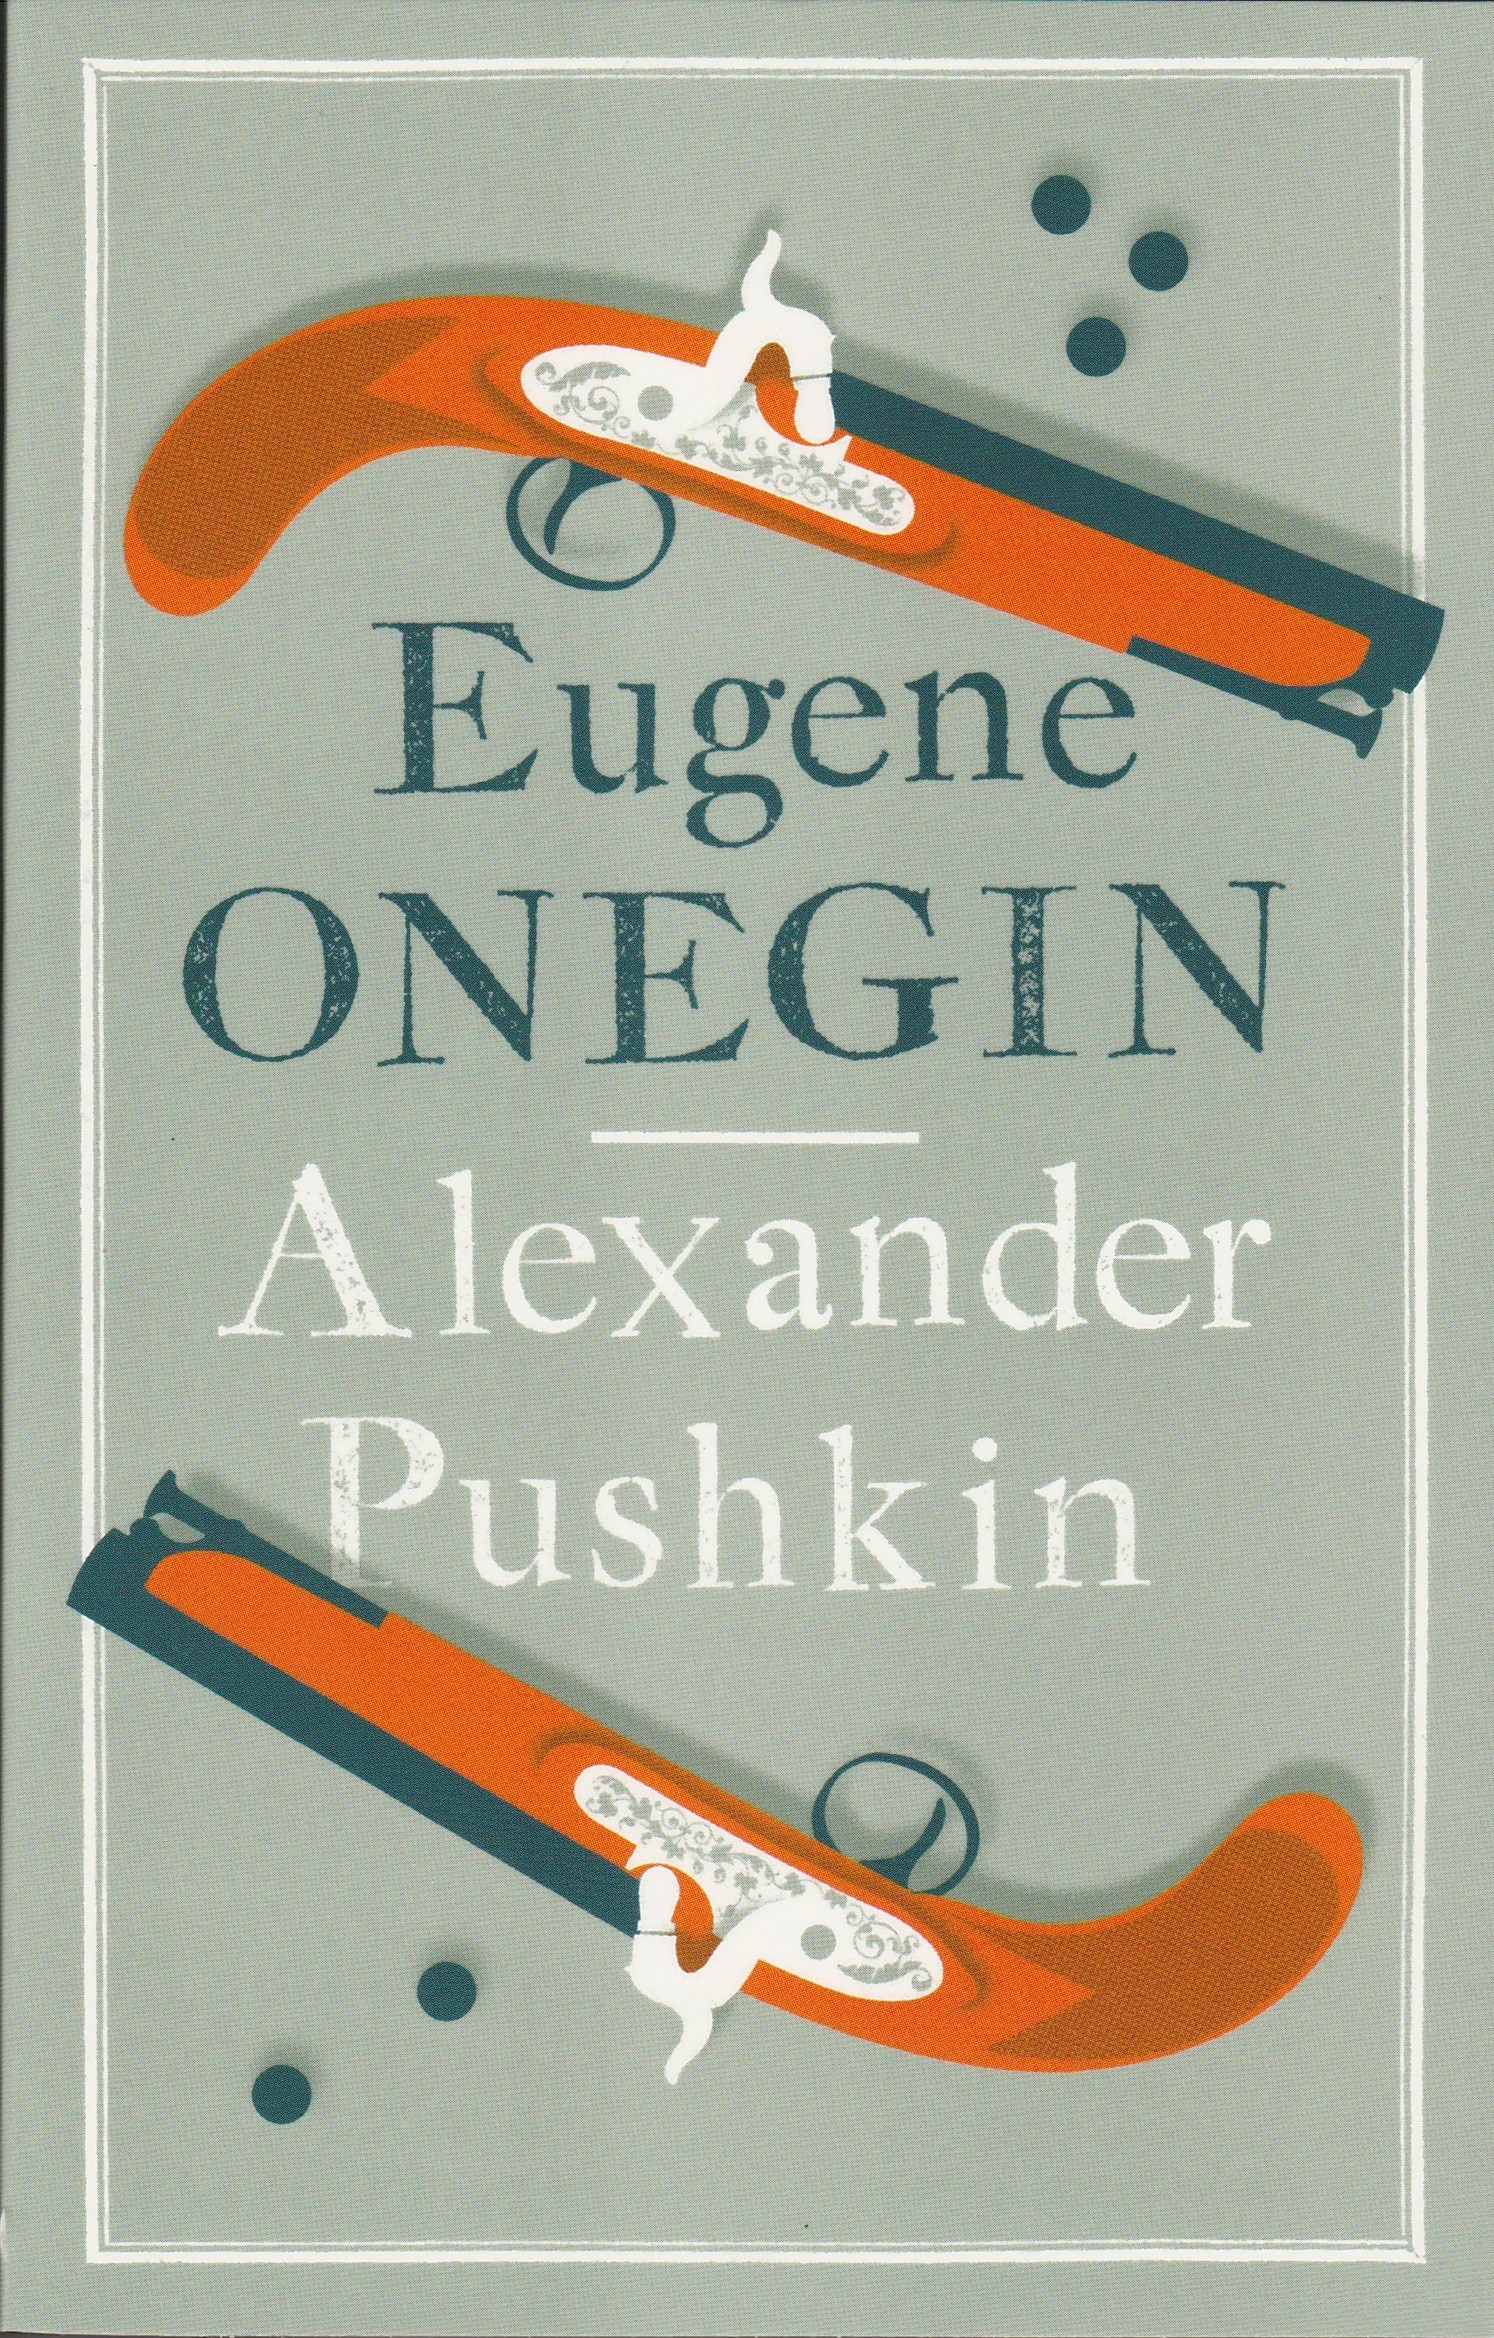 "eugene onegin essay Free essay: russian literature was very much influenced by the literary trope known as the superfluous man this trope was ideal for this trend can be witnessed through many examples such as alexander pushkin's ""eugene onegin"" and ""diary of a superfluous man"" by ivan turgenev the characters described by these."